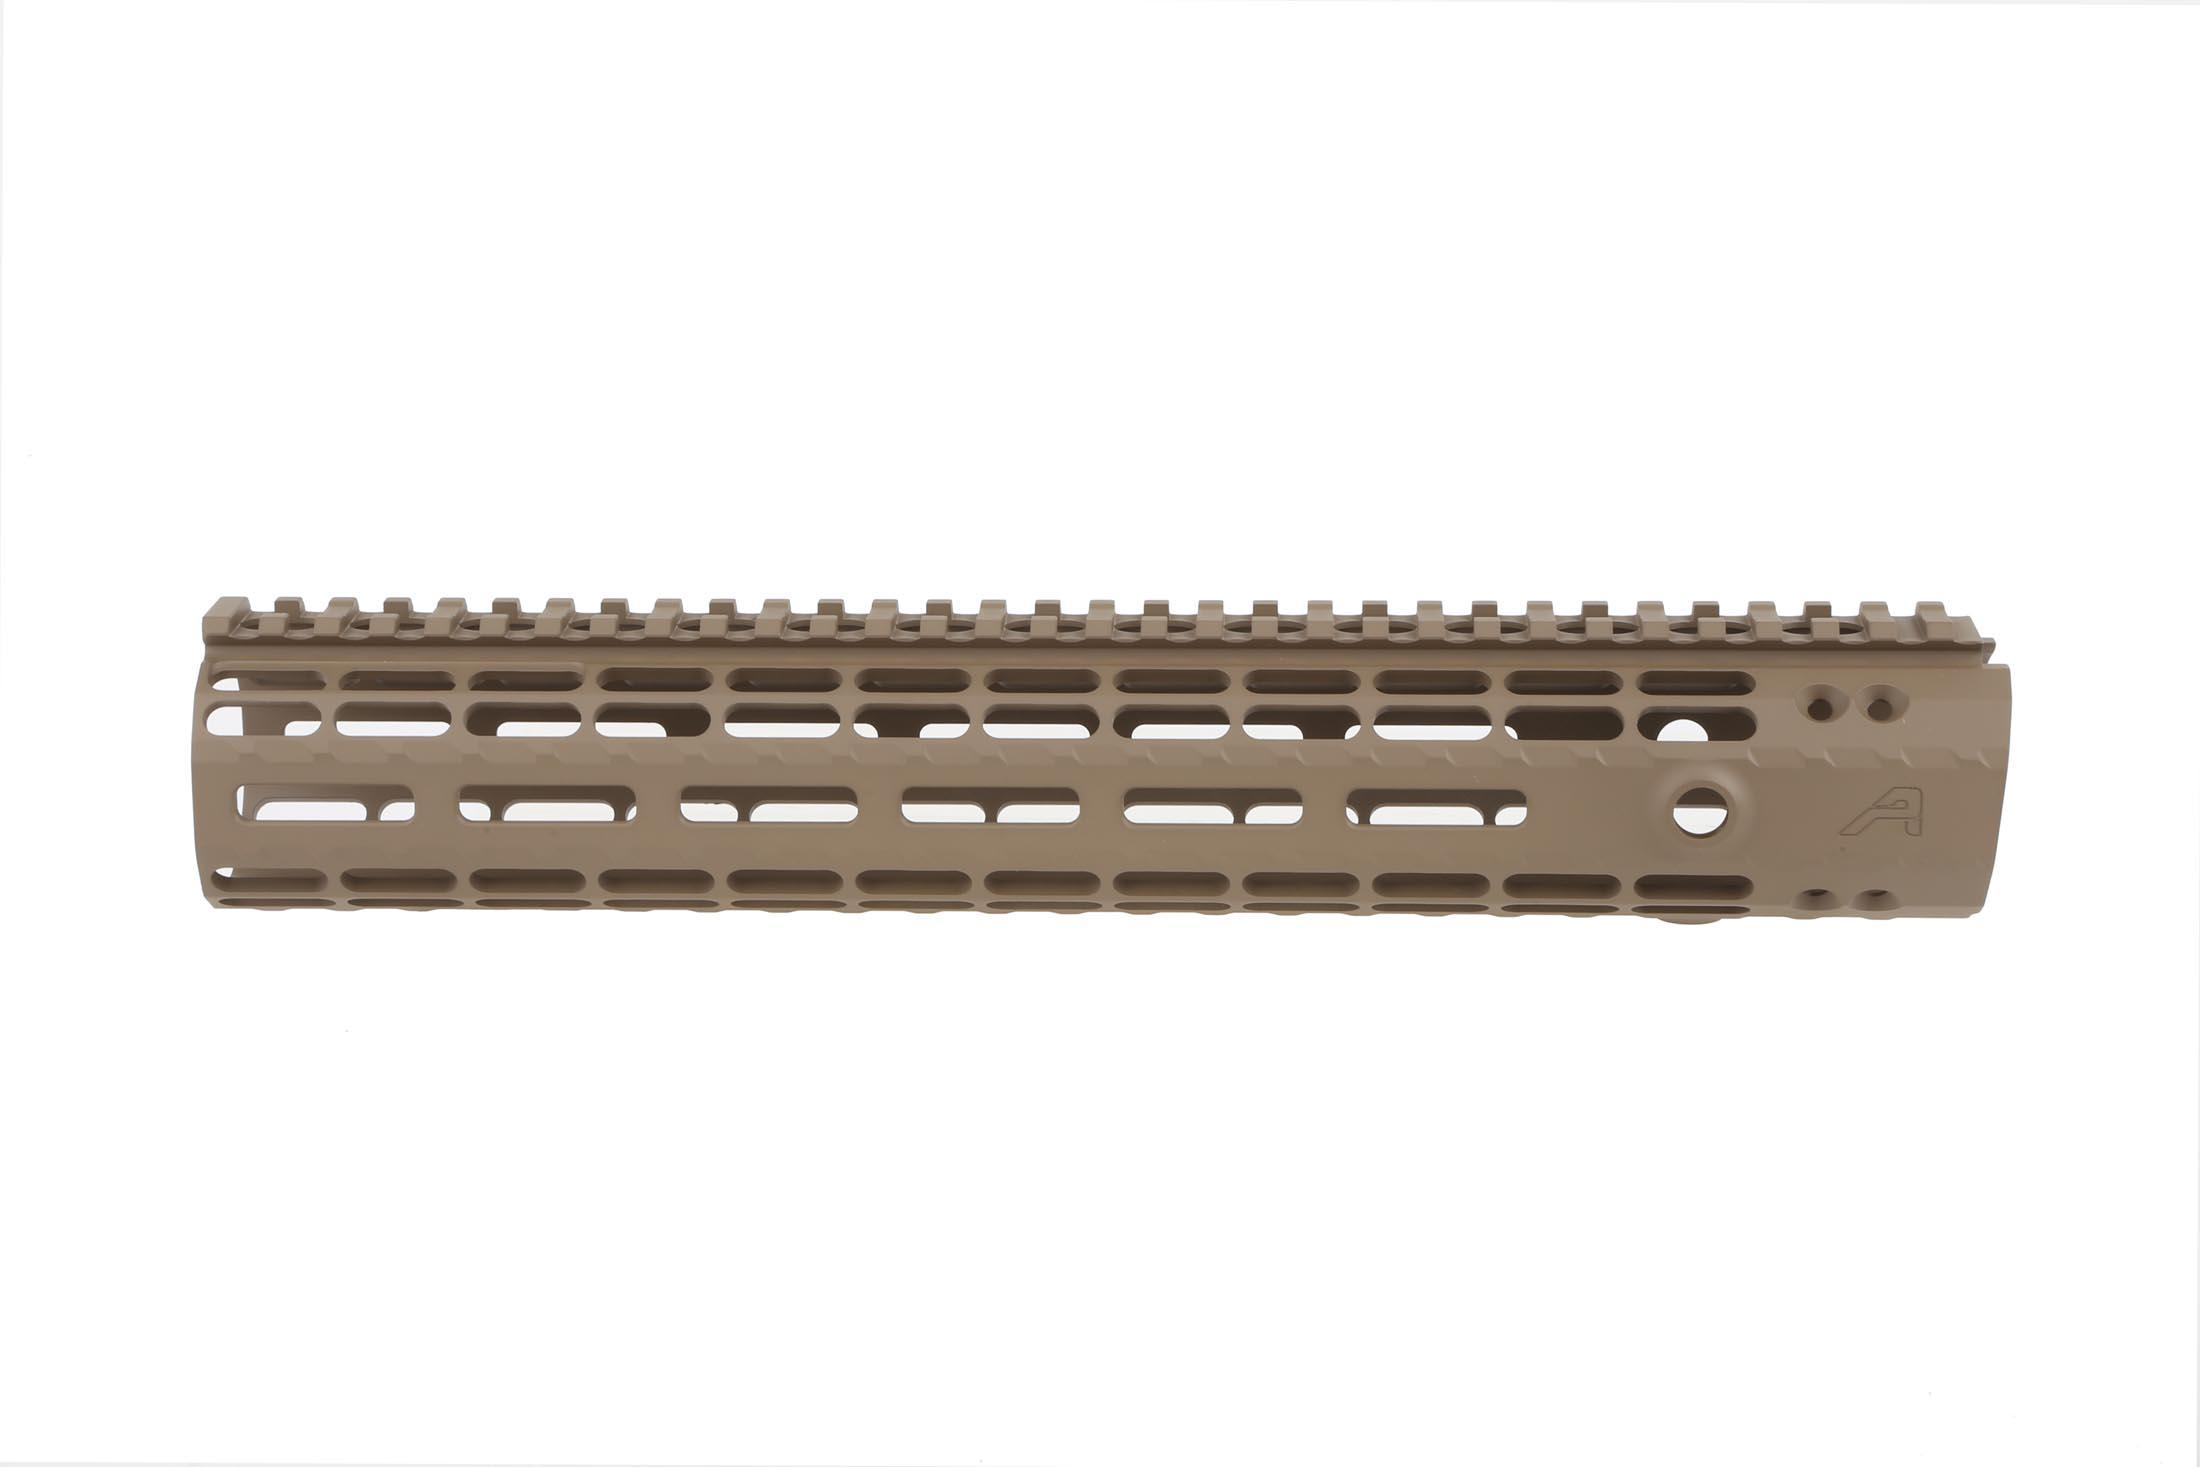 The Aero Precision 12in AR-15 Enhanced M-LOK Handguard is compatible with low profile gas blocks